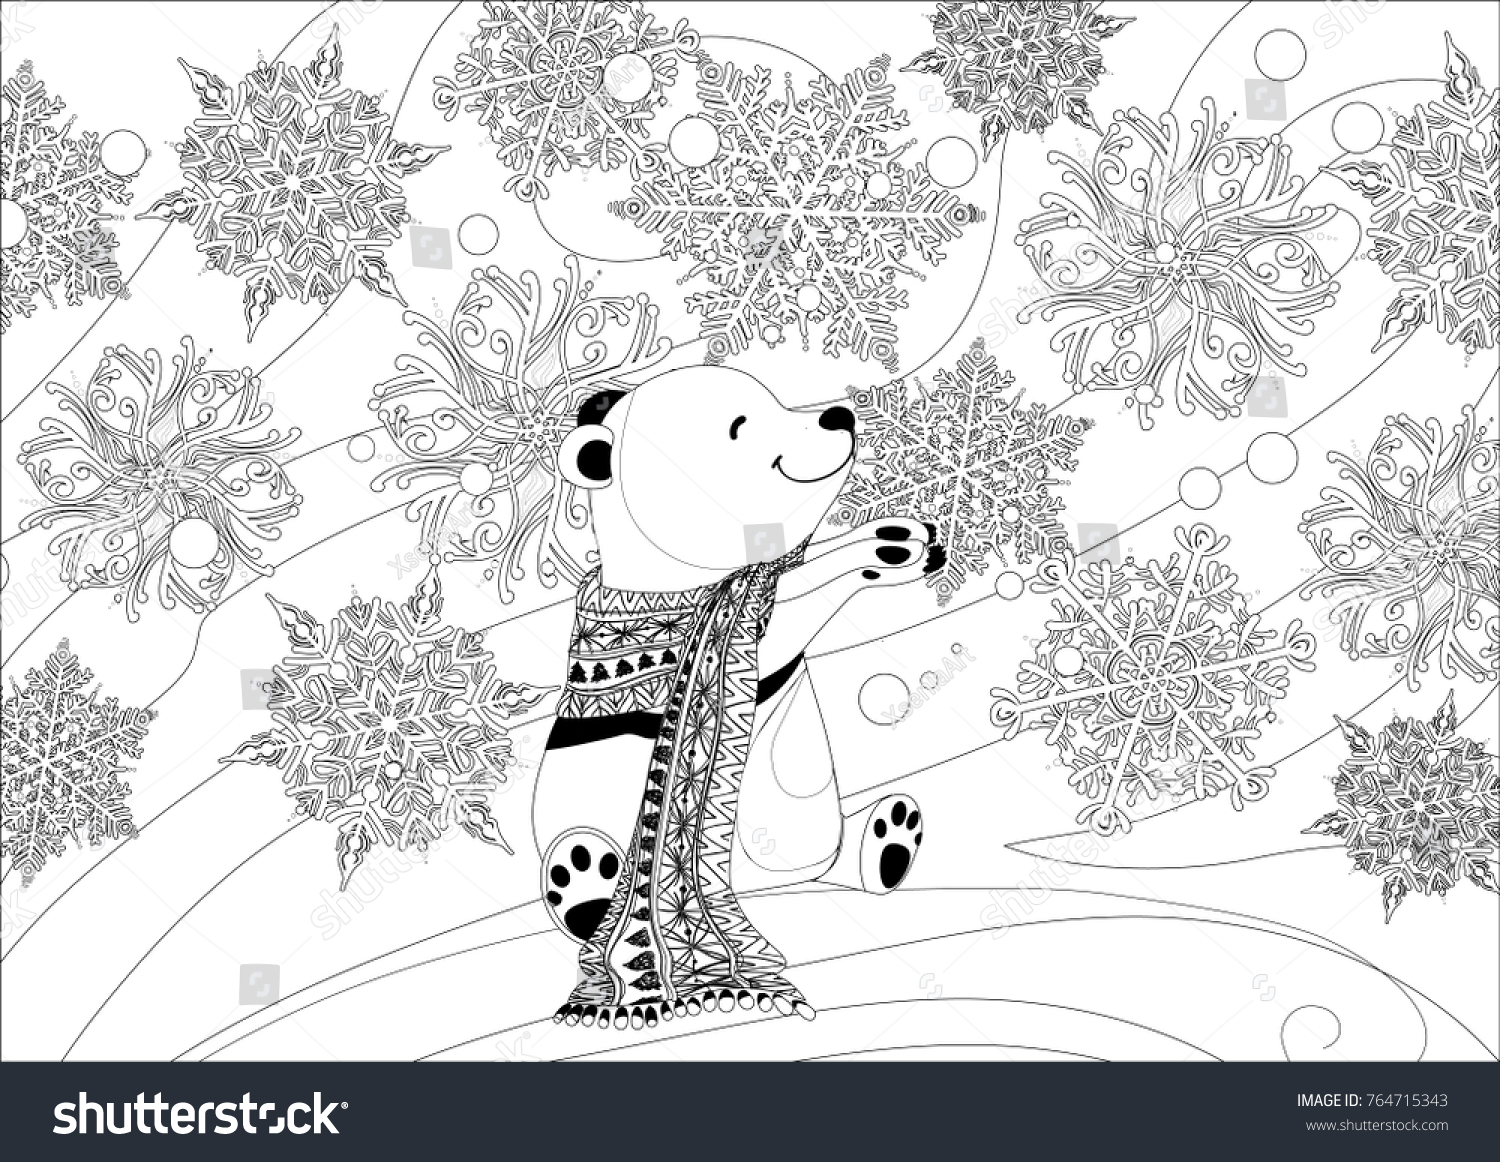 Coloring Page Adult Little Polar Bear Snowflakes Christmas Stock